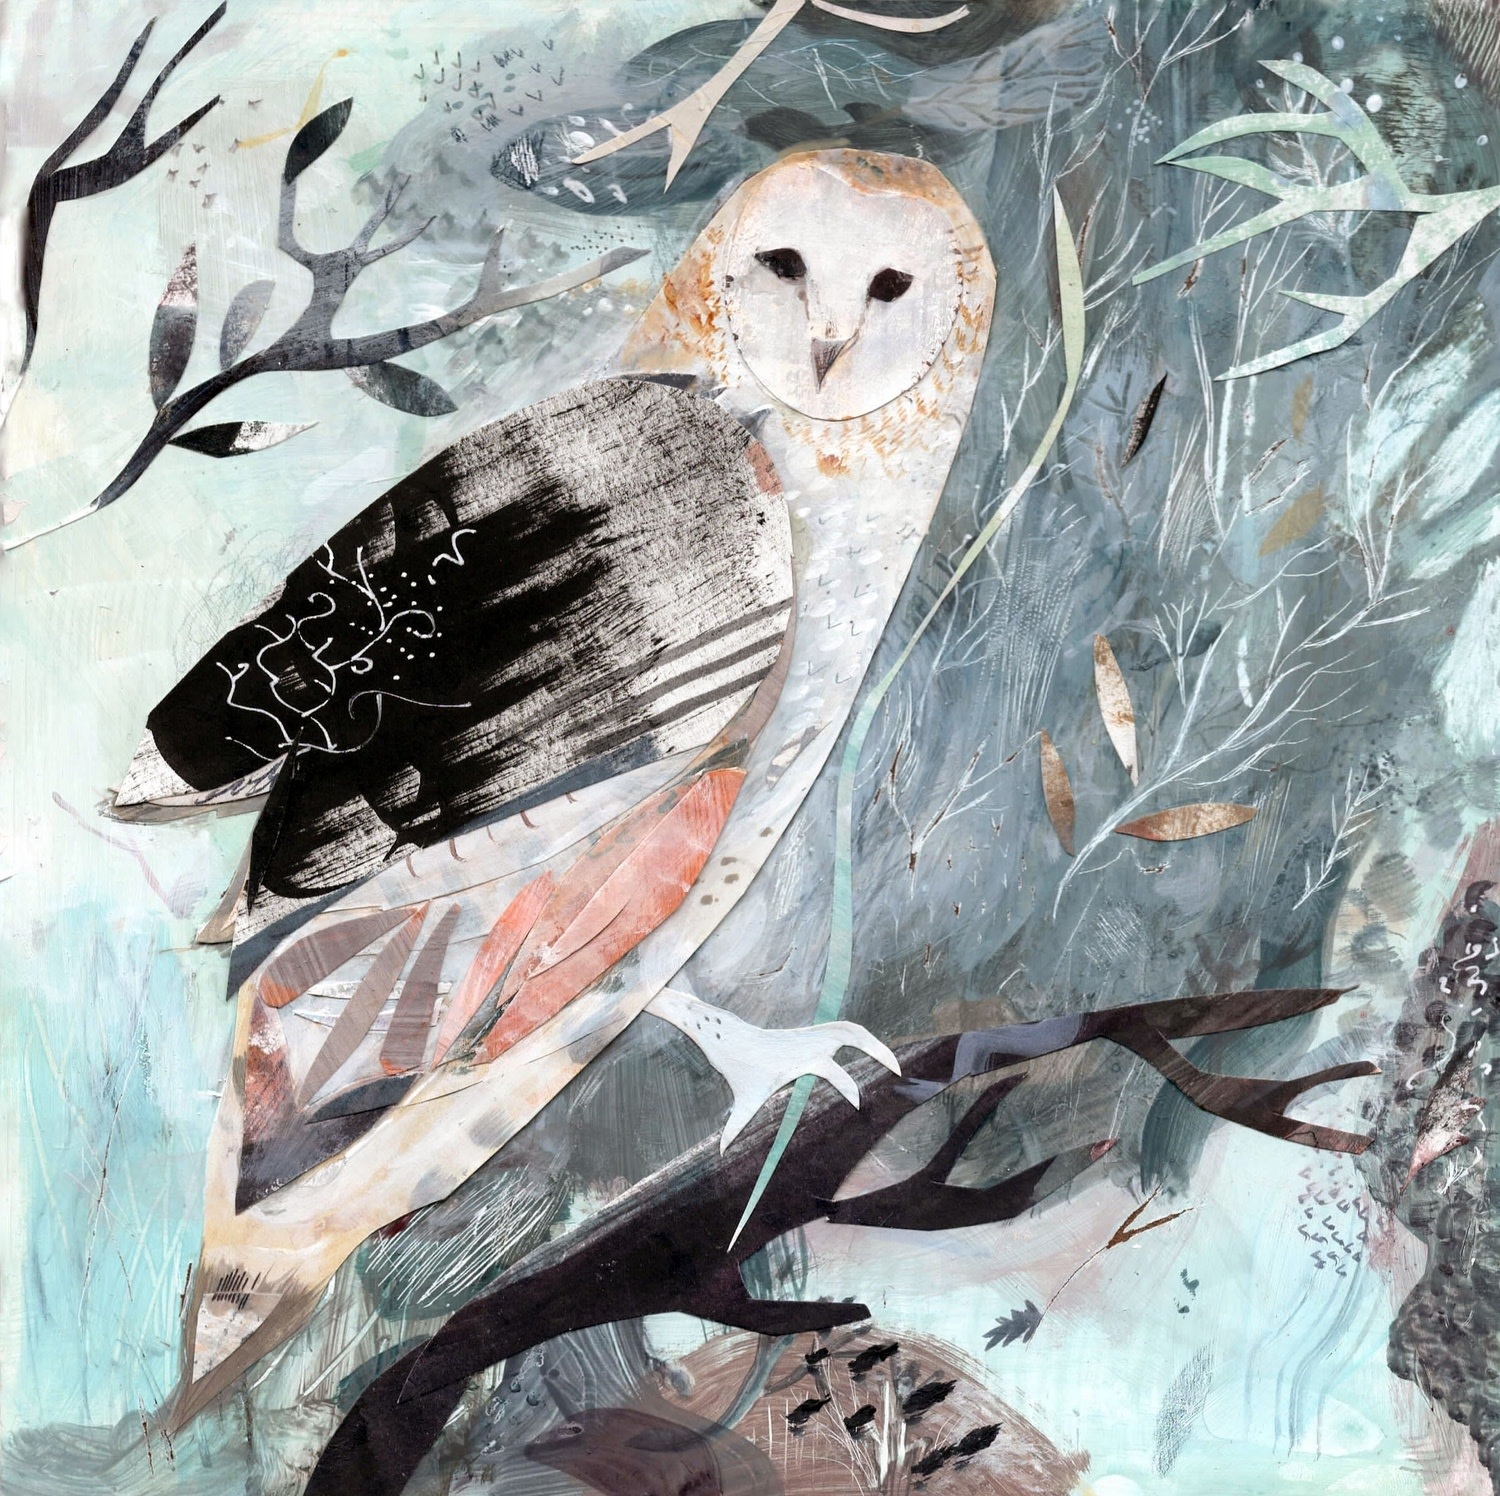 """<span class=""""link fancybox-details-link""""><a href=""""/exhibitions/36/works/image_standalone4868/"""">View Detail Page</a></span><p>Emma Malfroy</p><p><em>Owl</em></p><p>gouache, acrylic ink & collage</p><p>£380</p>"""